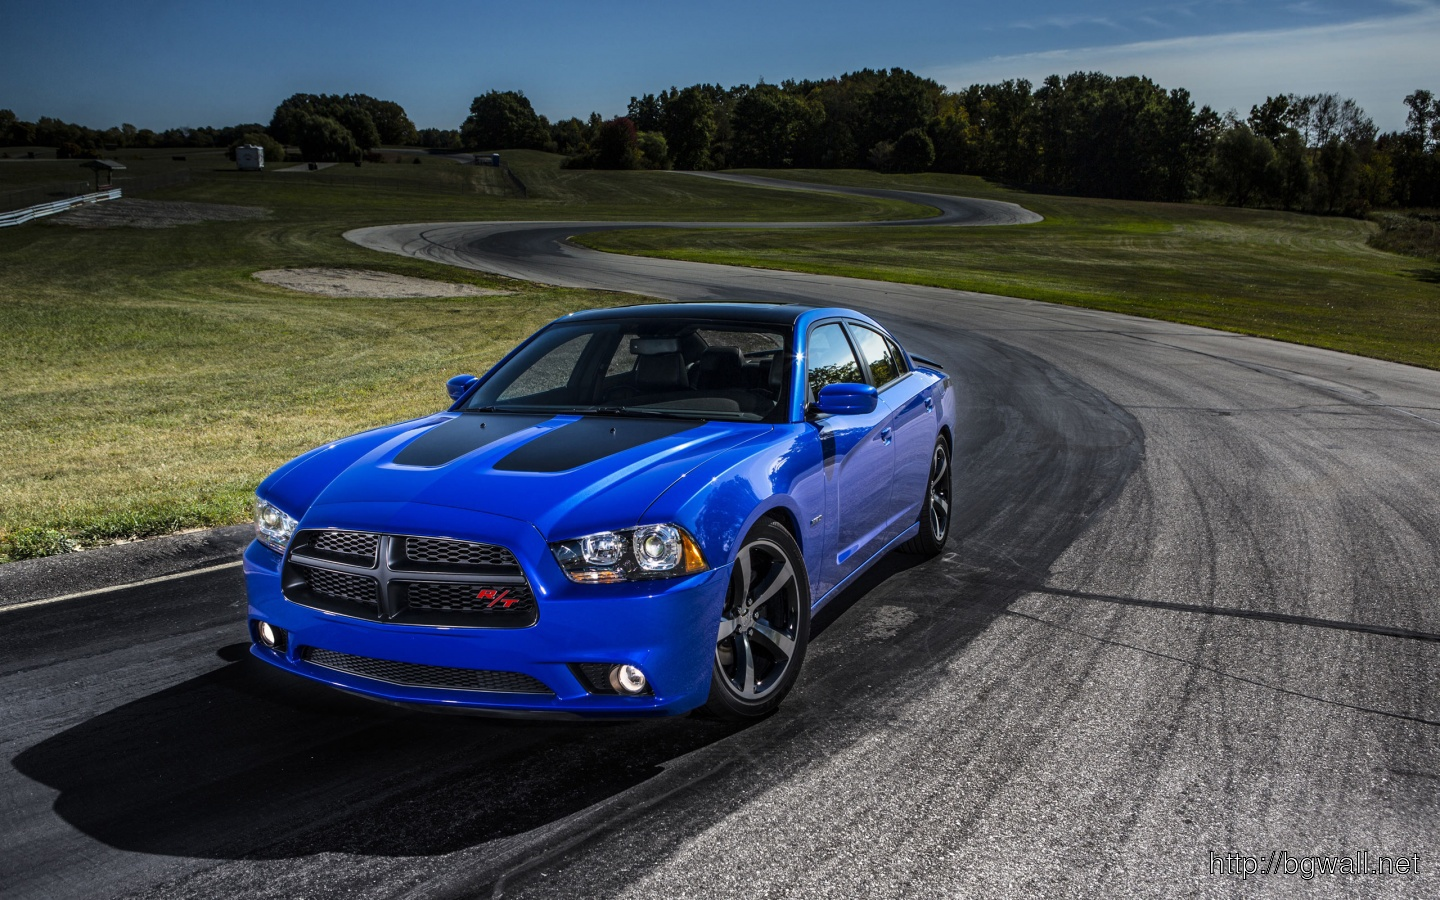 2013 Dodge Charger Dayton Wallpaper In 1440x900 Resolution Full Size